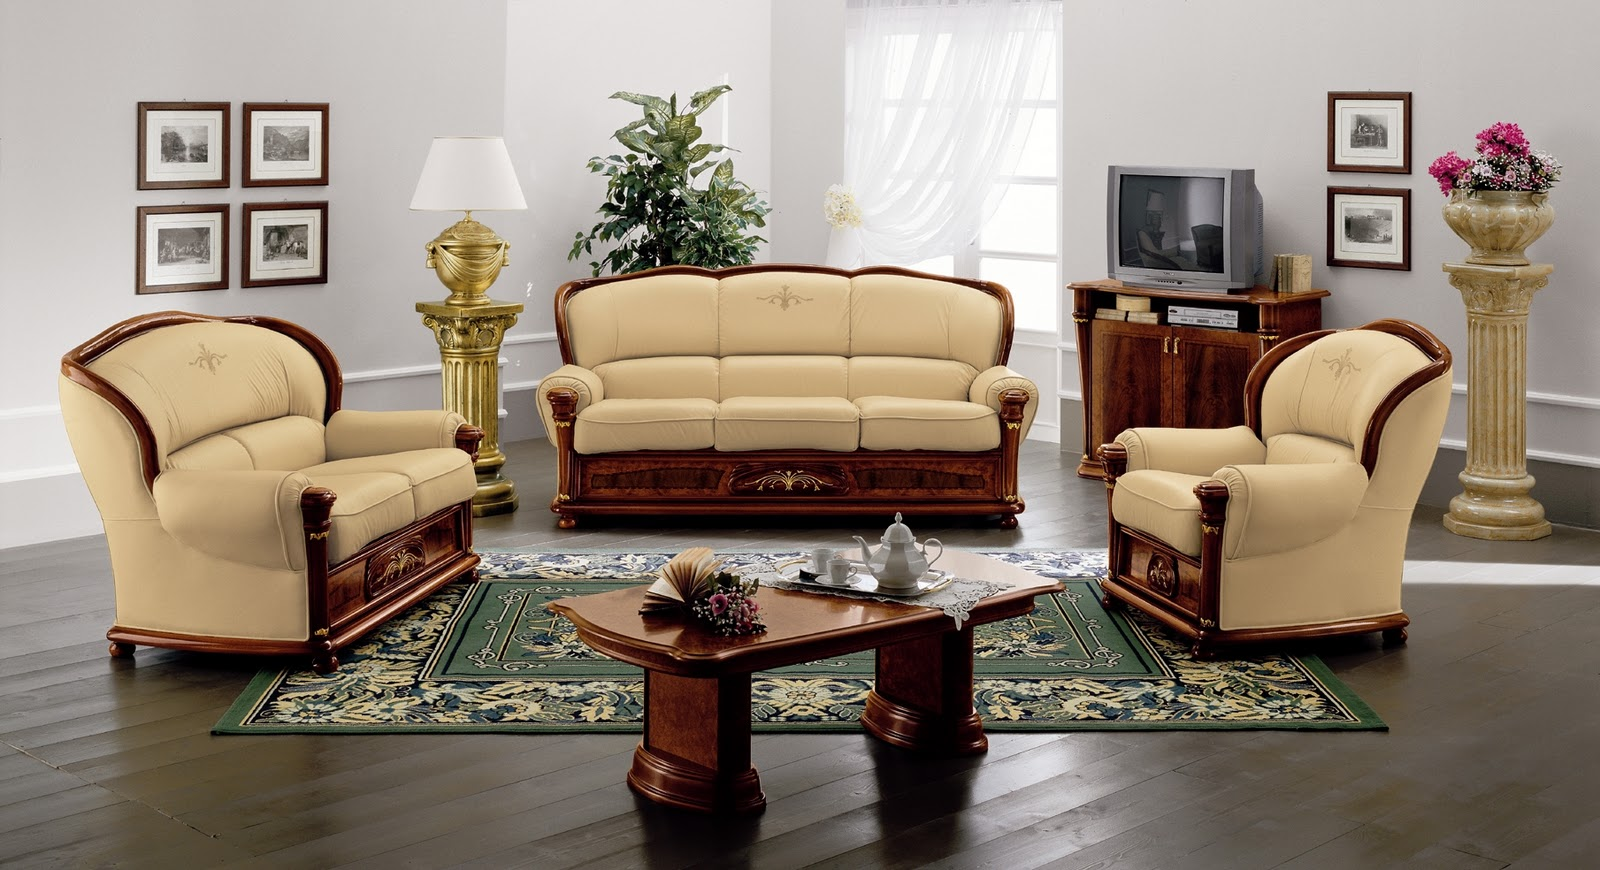 Living room sofa design photos living room interior designs for Sitting room sofa designs